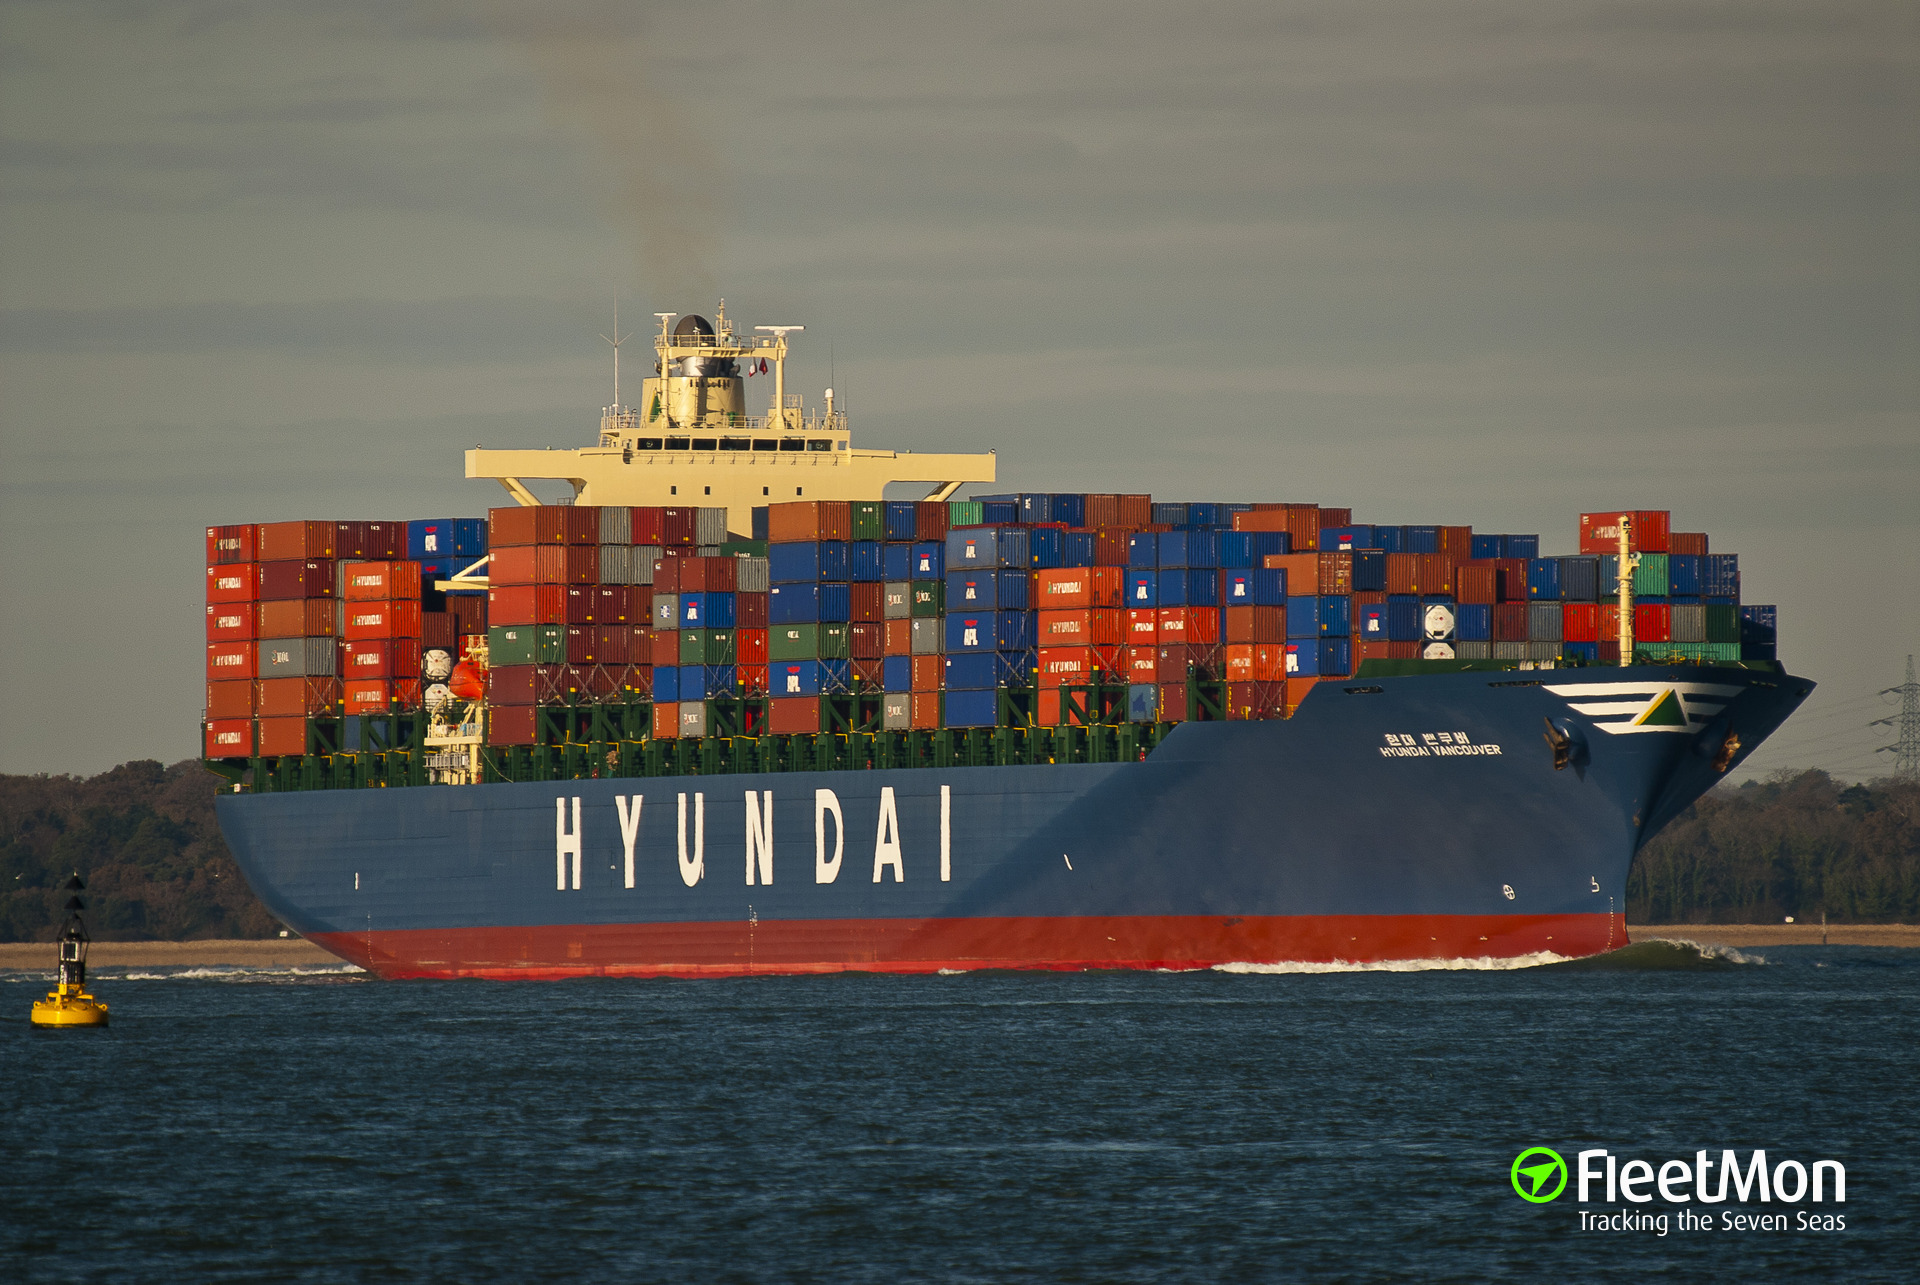 Container ship collision, Incheon